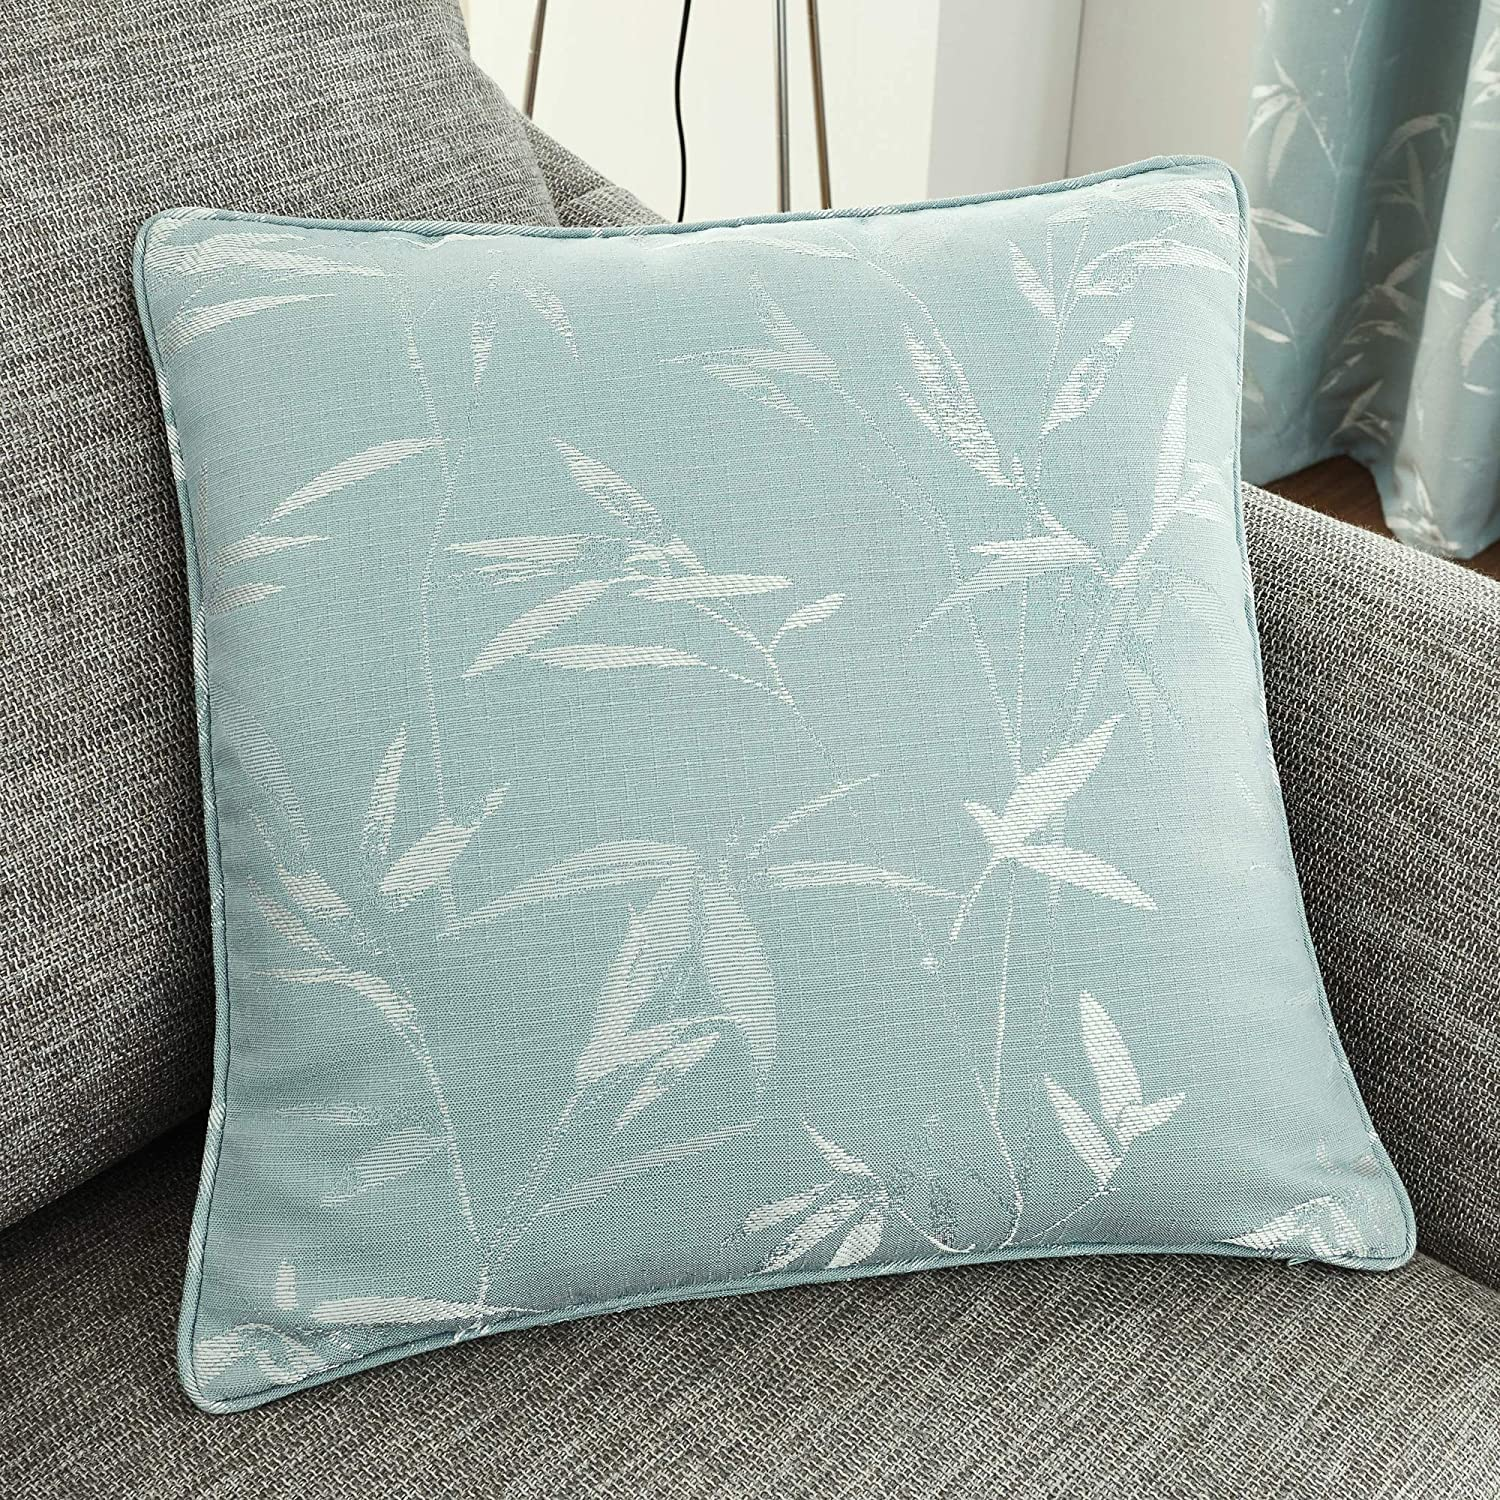 "Catherine Lansfield 18/"" x 18/"" Jacquard Leaf Cushion Covers Piped Edging FREE P/&P"